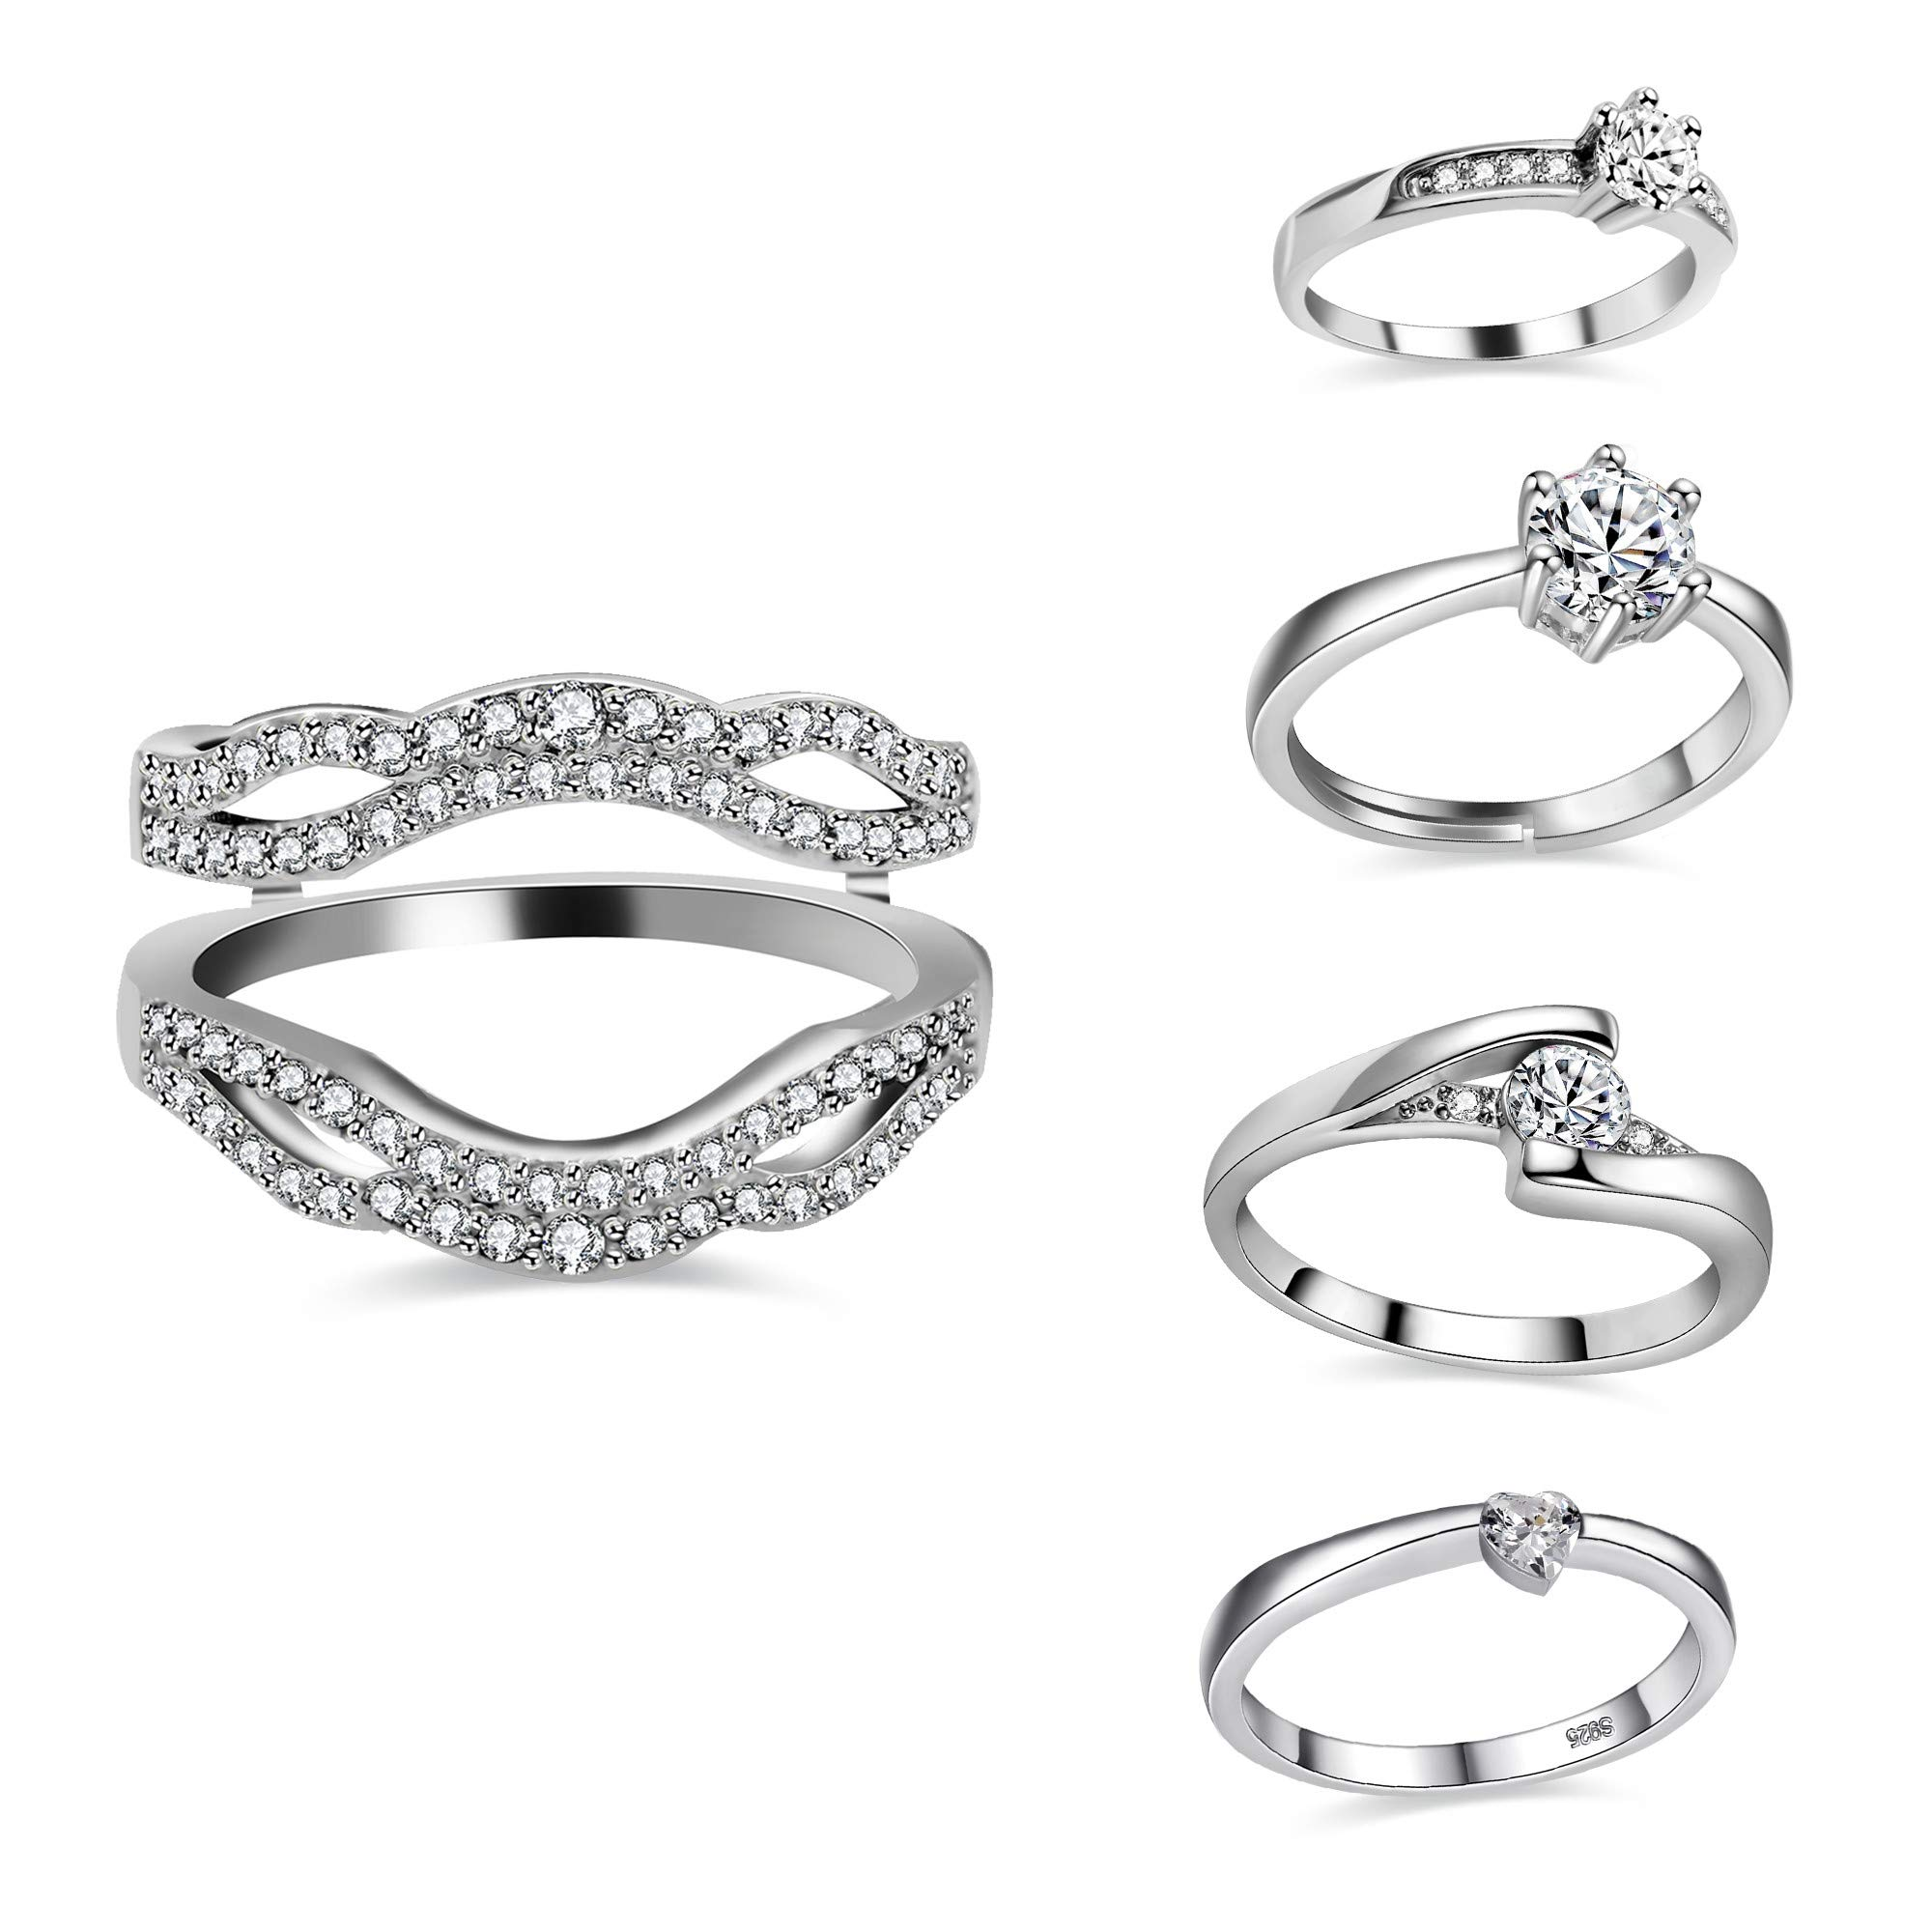 Uloveido 5 PCS Rings for One Bridal Set - 18K White Gold Plated Ring Enhancer Guard Sent with Heart Round Cubic Zirconia Rings Set for Women (Size 7) Y450